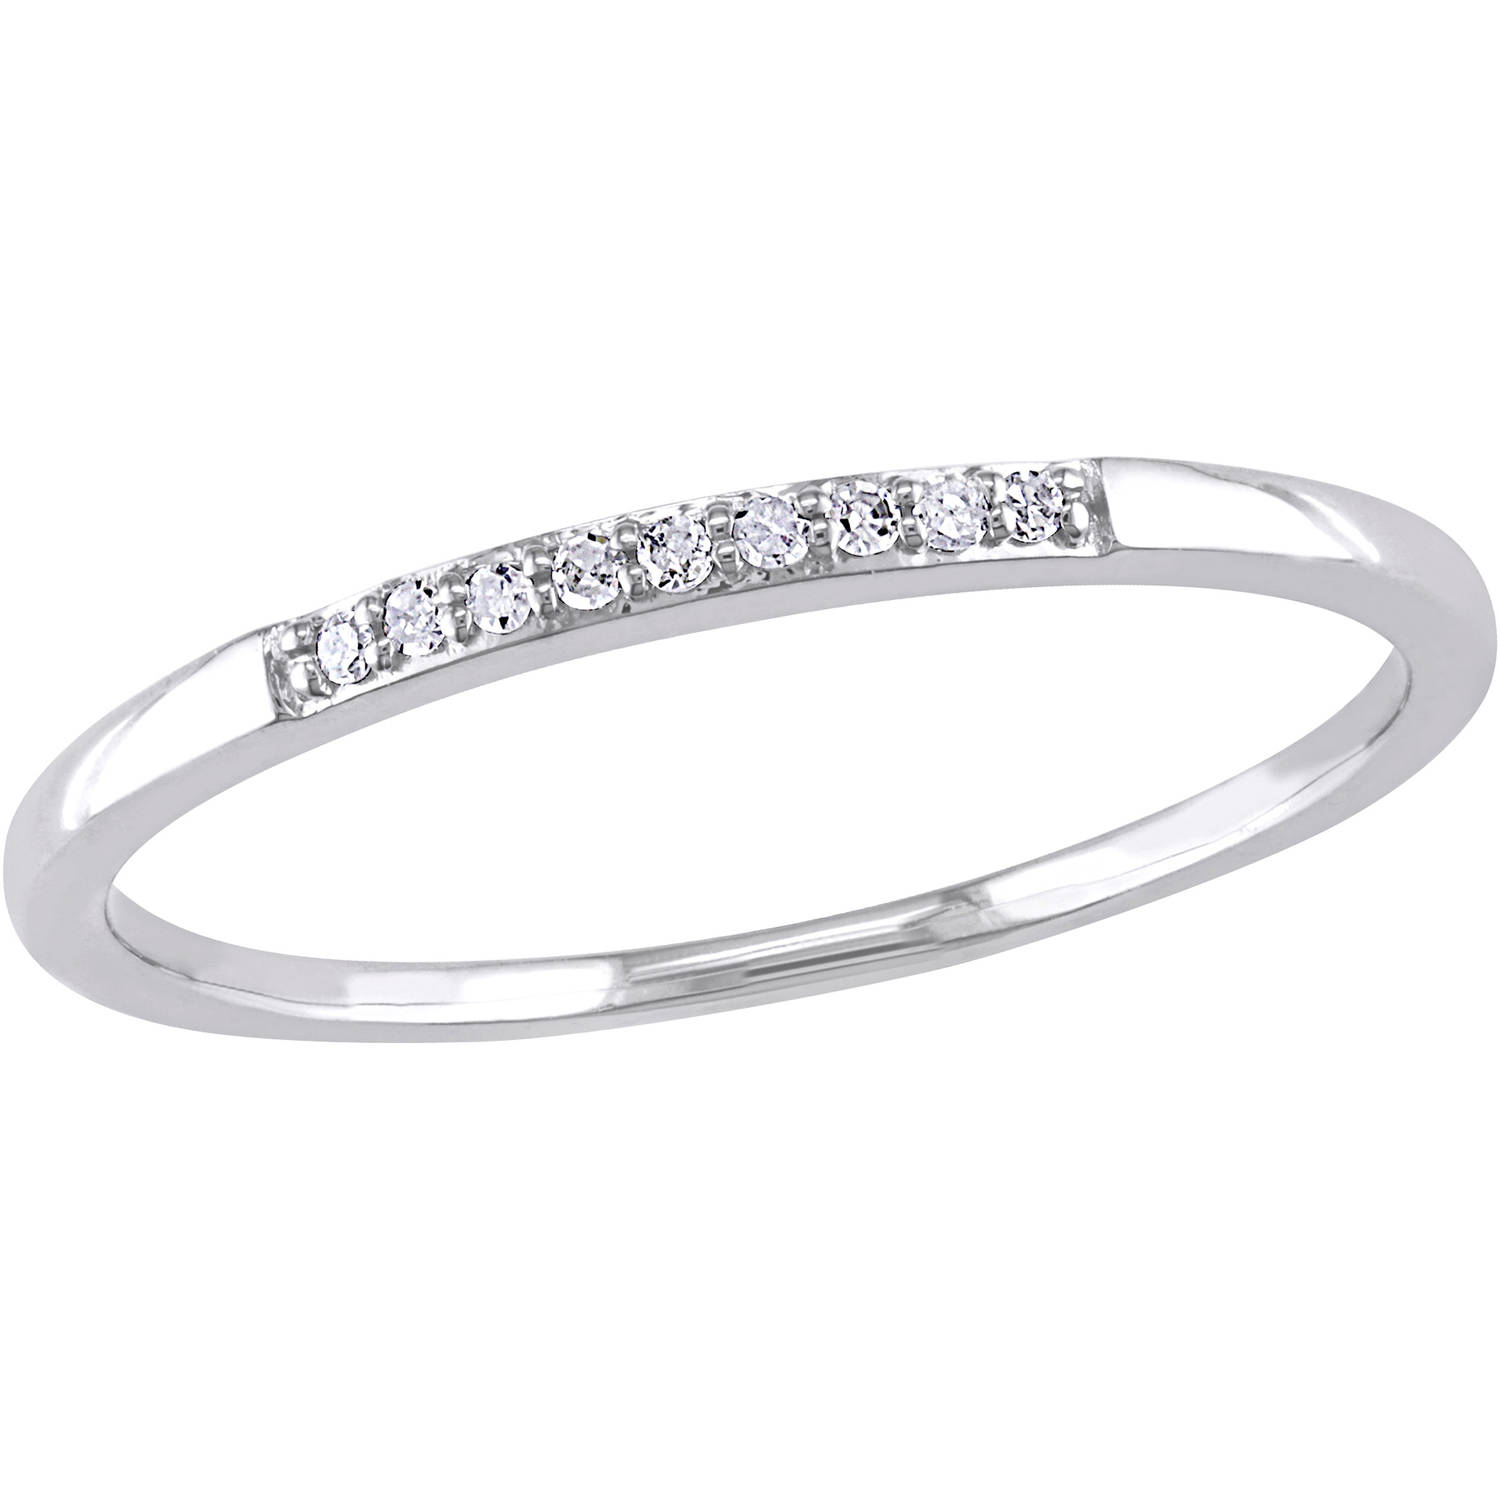 Miabella Diamond-Accent 10kt White Gold Wedding Band